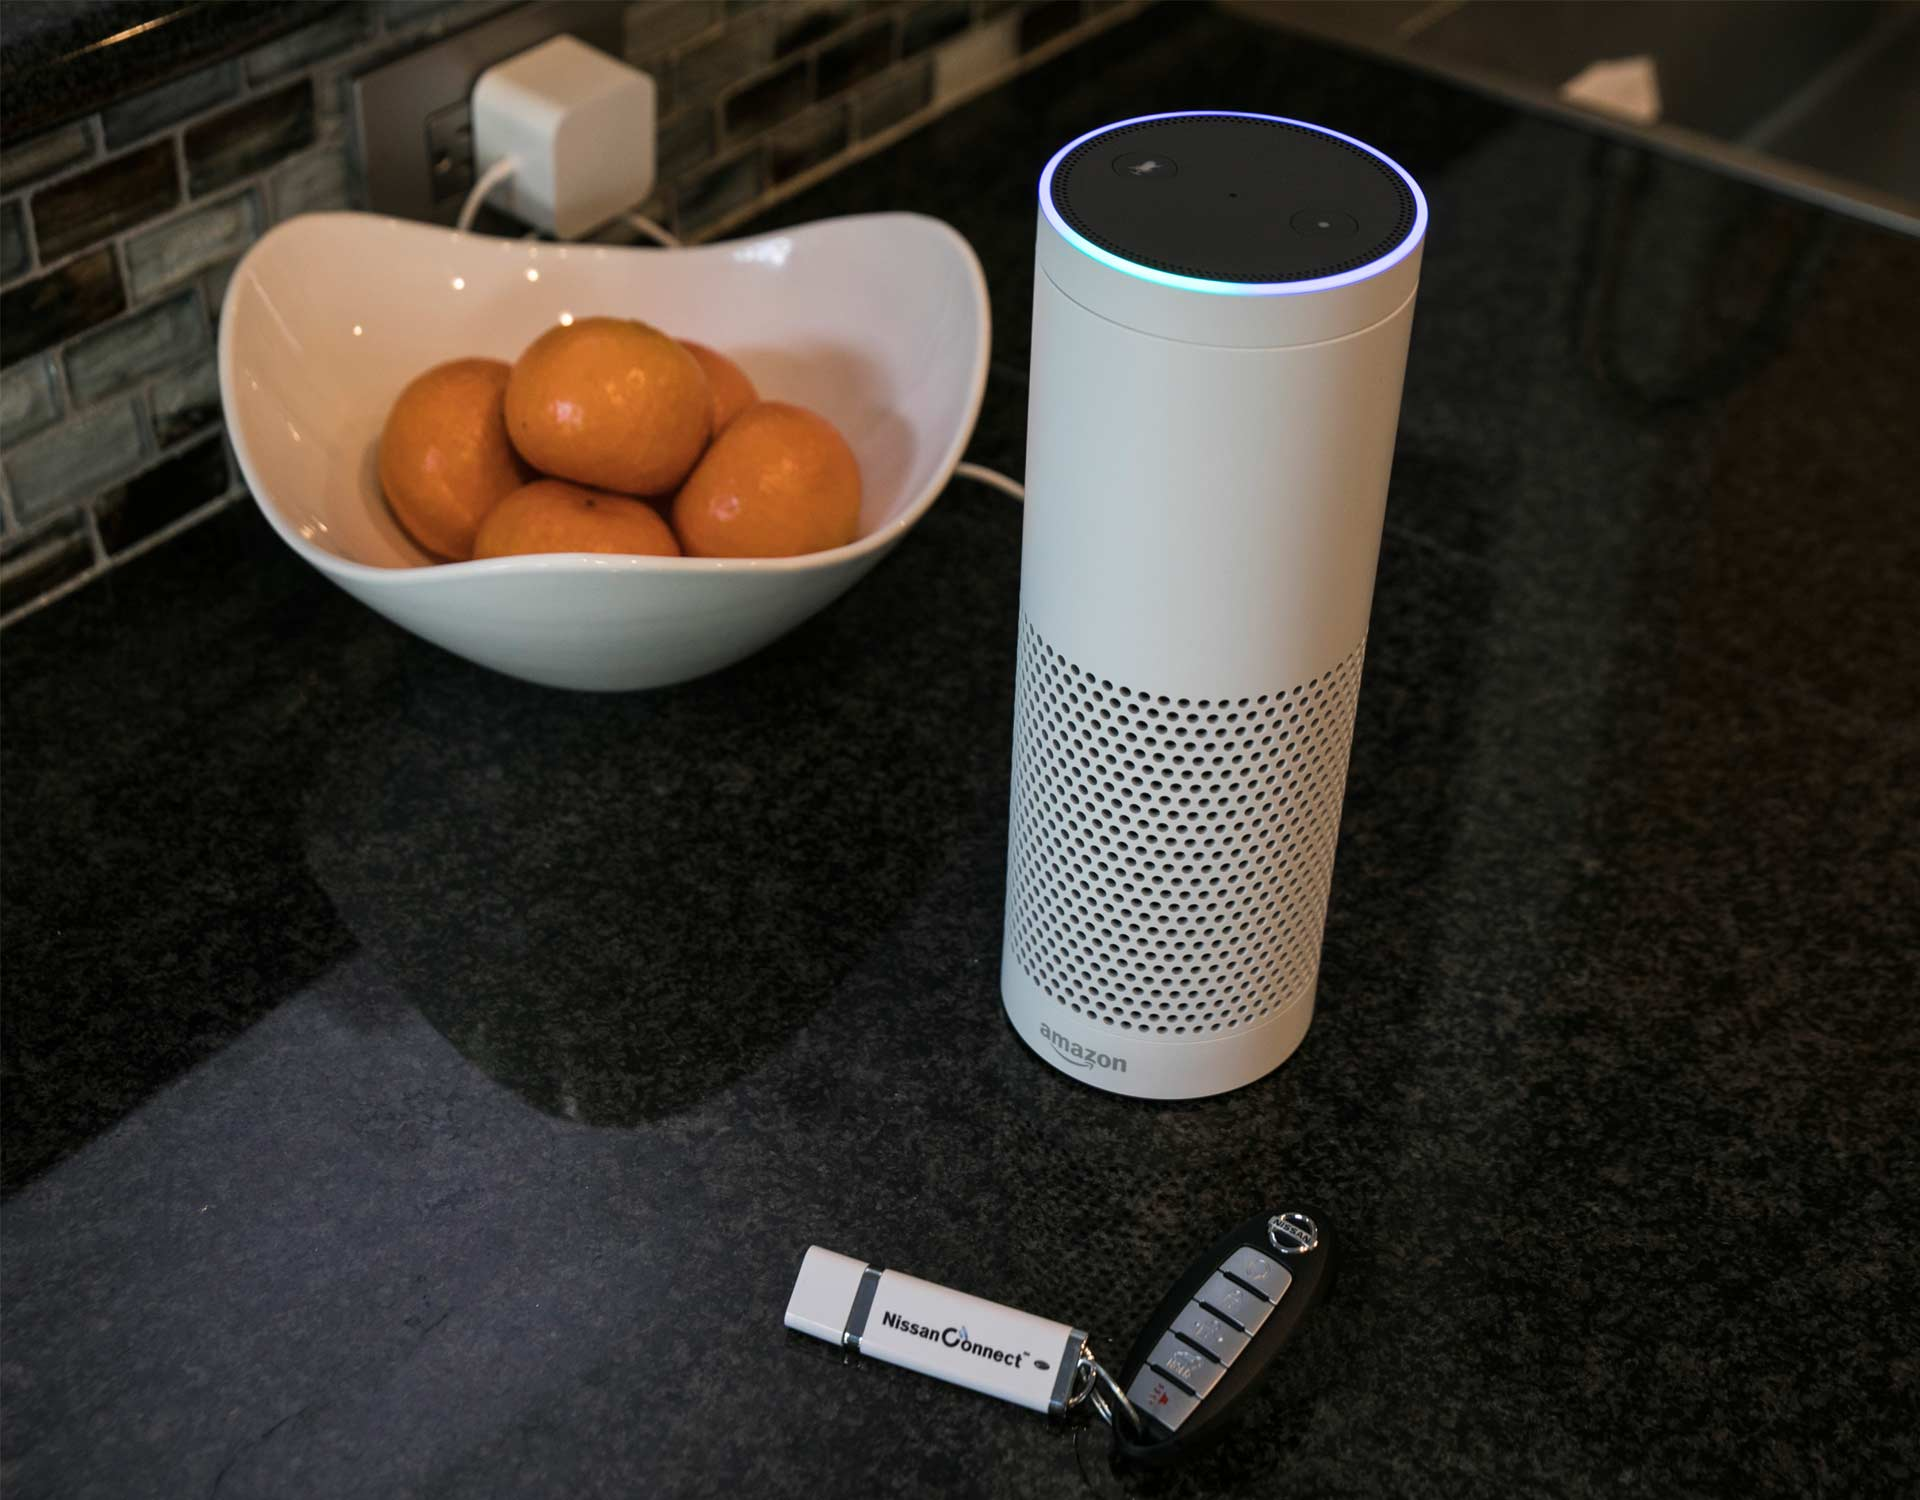 NissanConnect-Amazon-Alexa